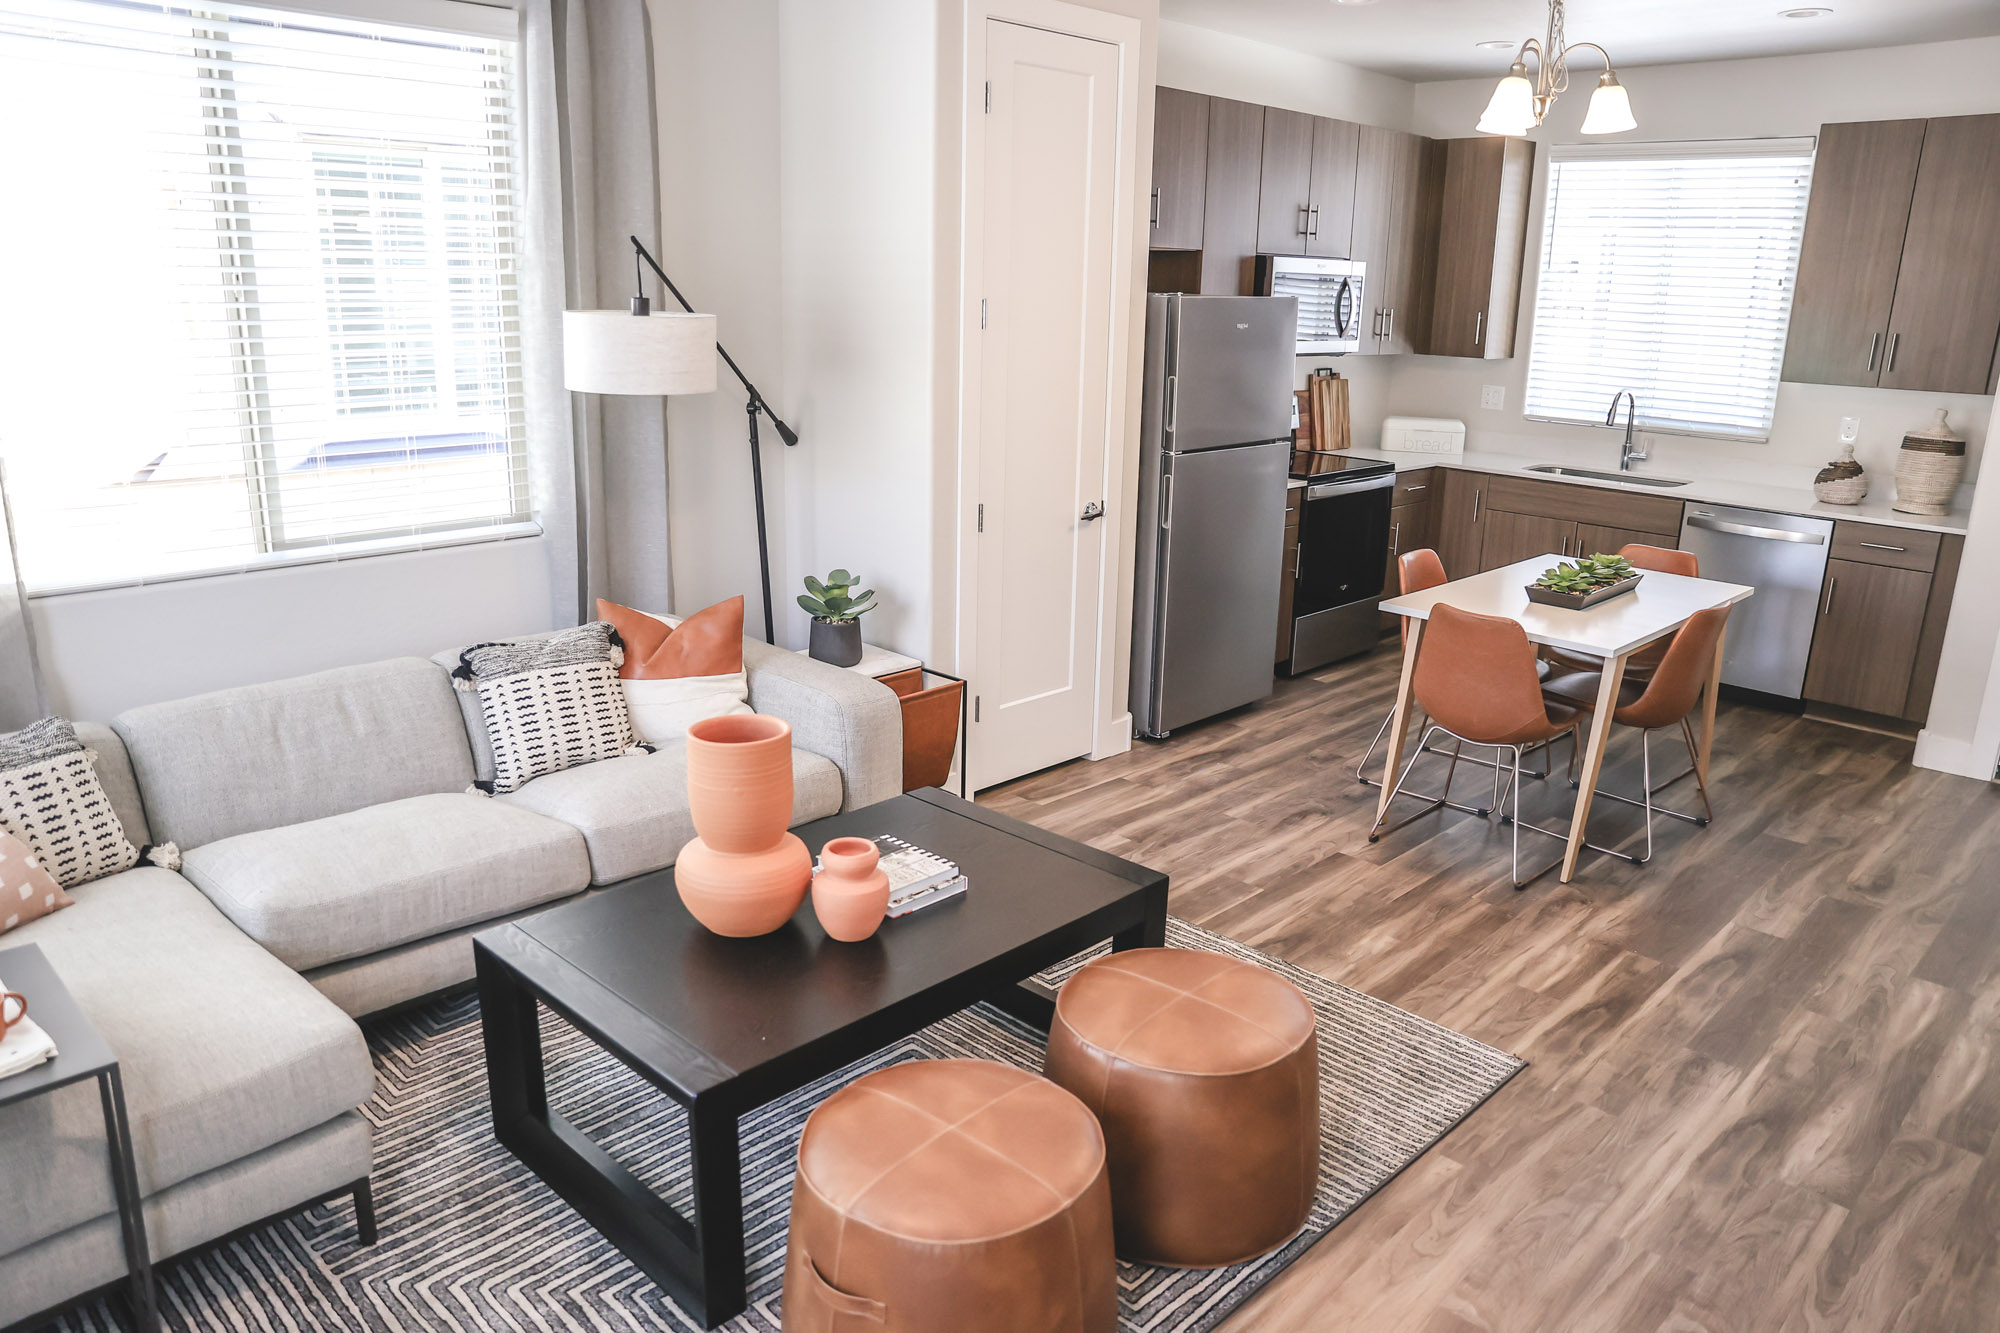 Open Floor Plans at Olive Marketplace Apartments in Glendale, AZ